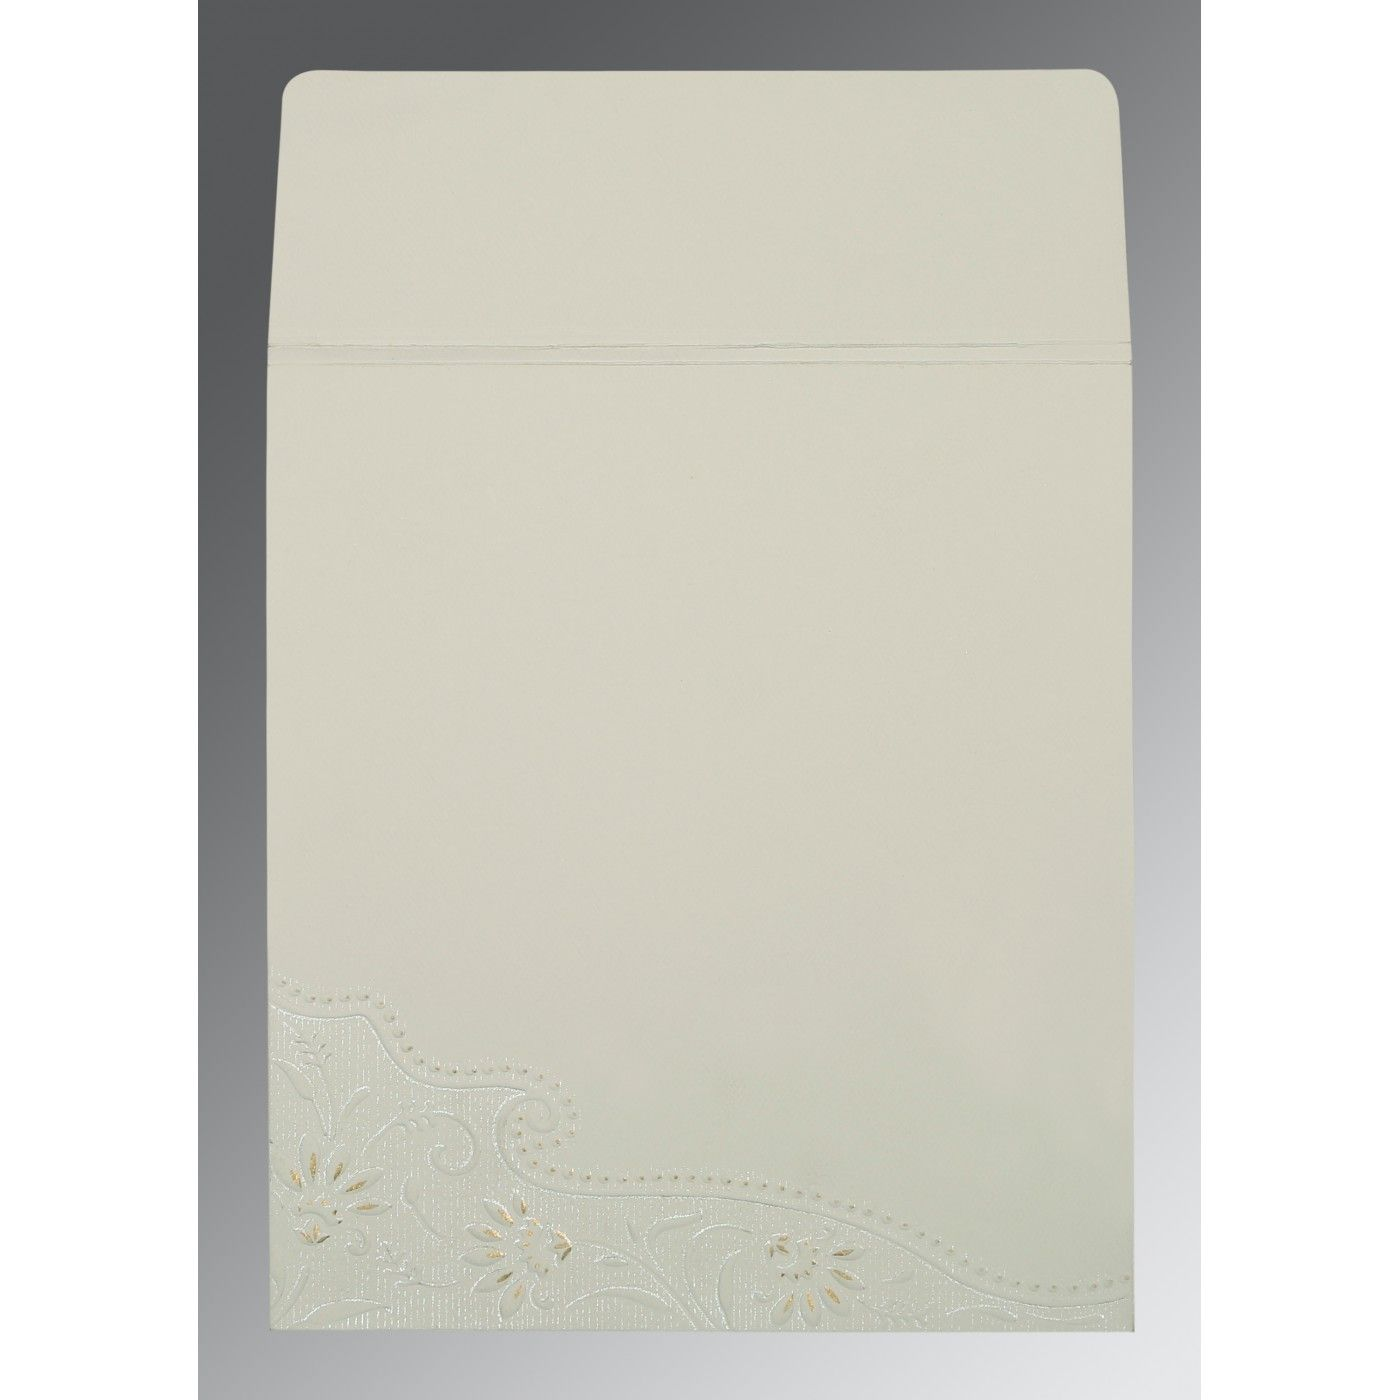 OFF-WHITE MATTE BOX THEMED - FOIL STAMPED WEDDING CARD : CRU-1228 - IndianWeddingCards